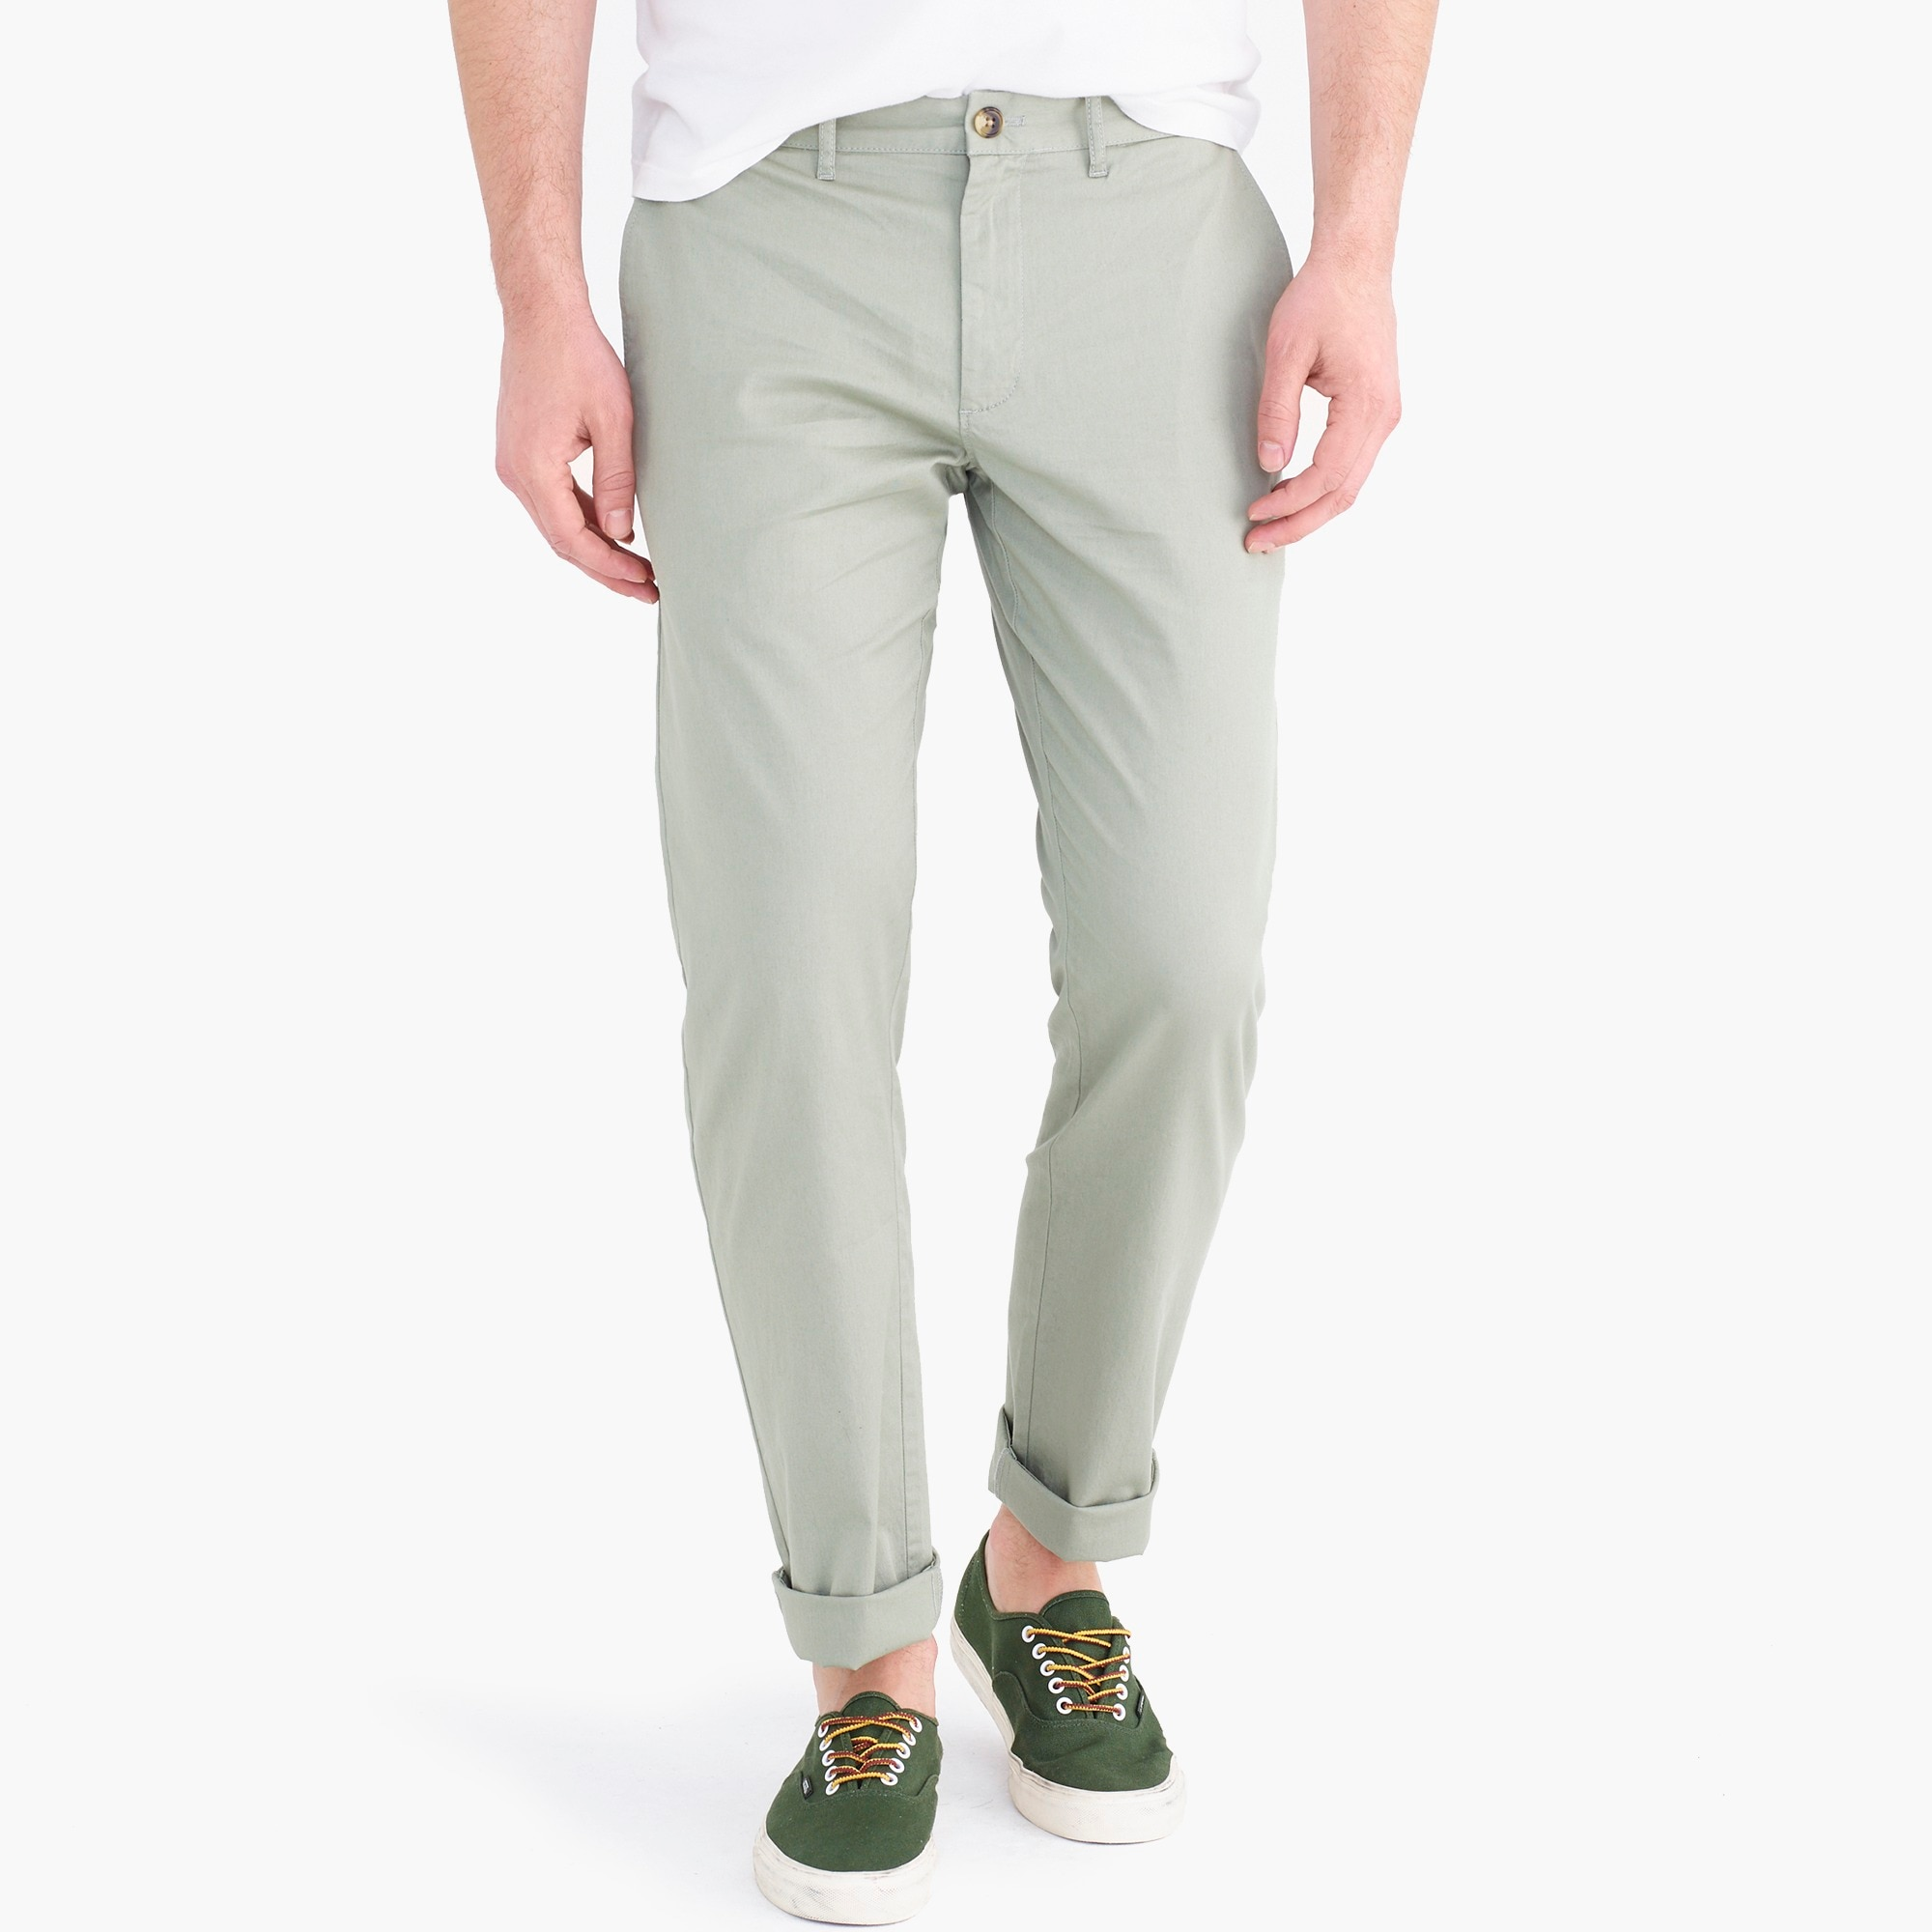 Image 1 for Slim-fit lightweight flex chino